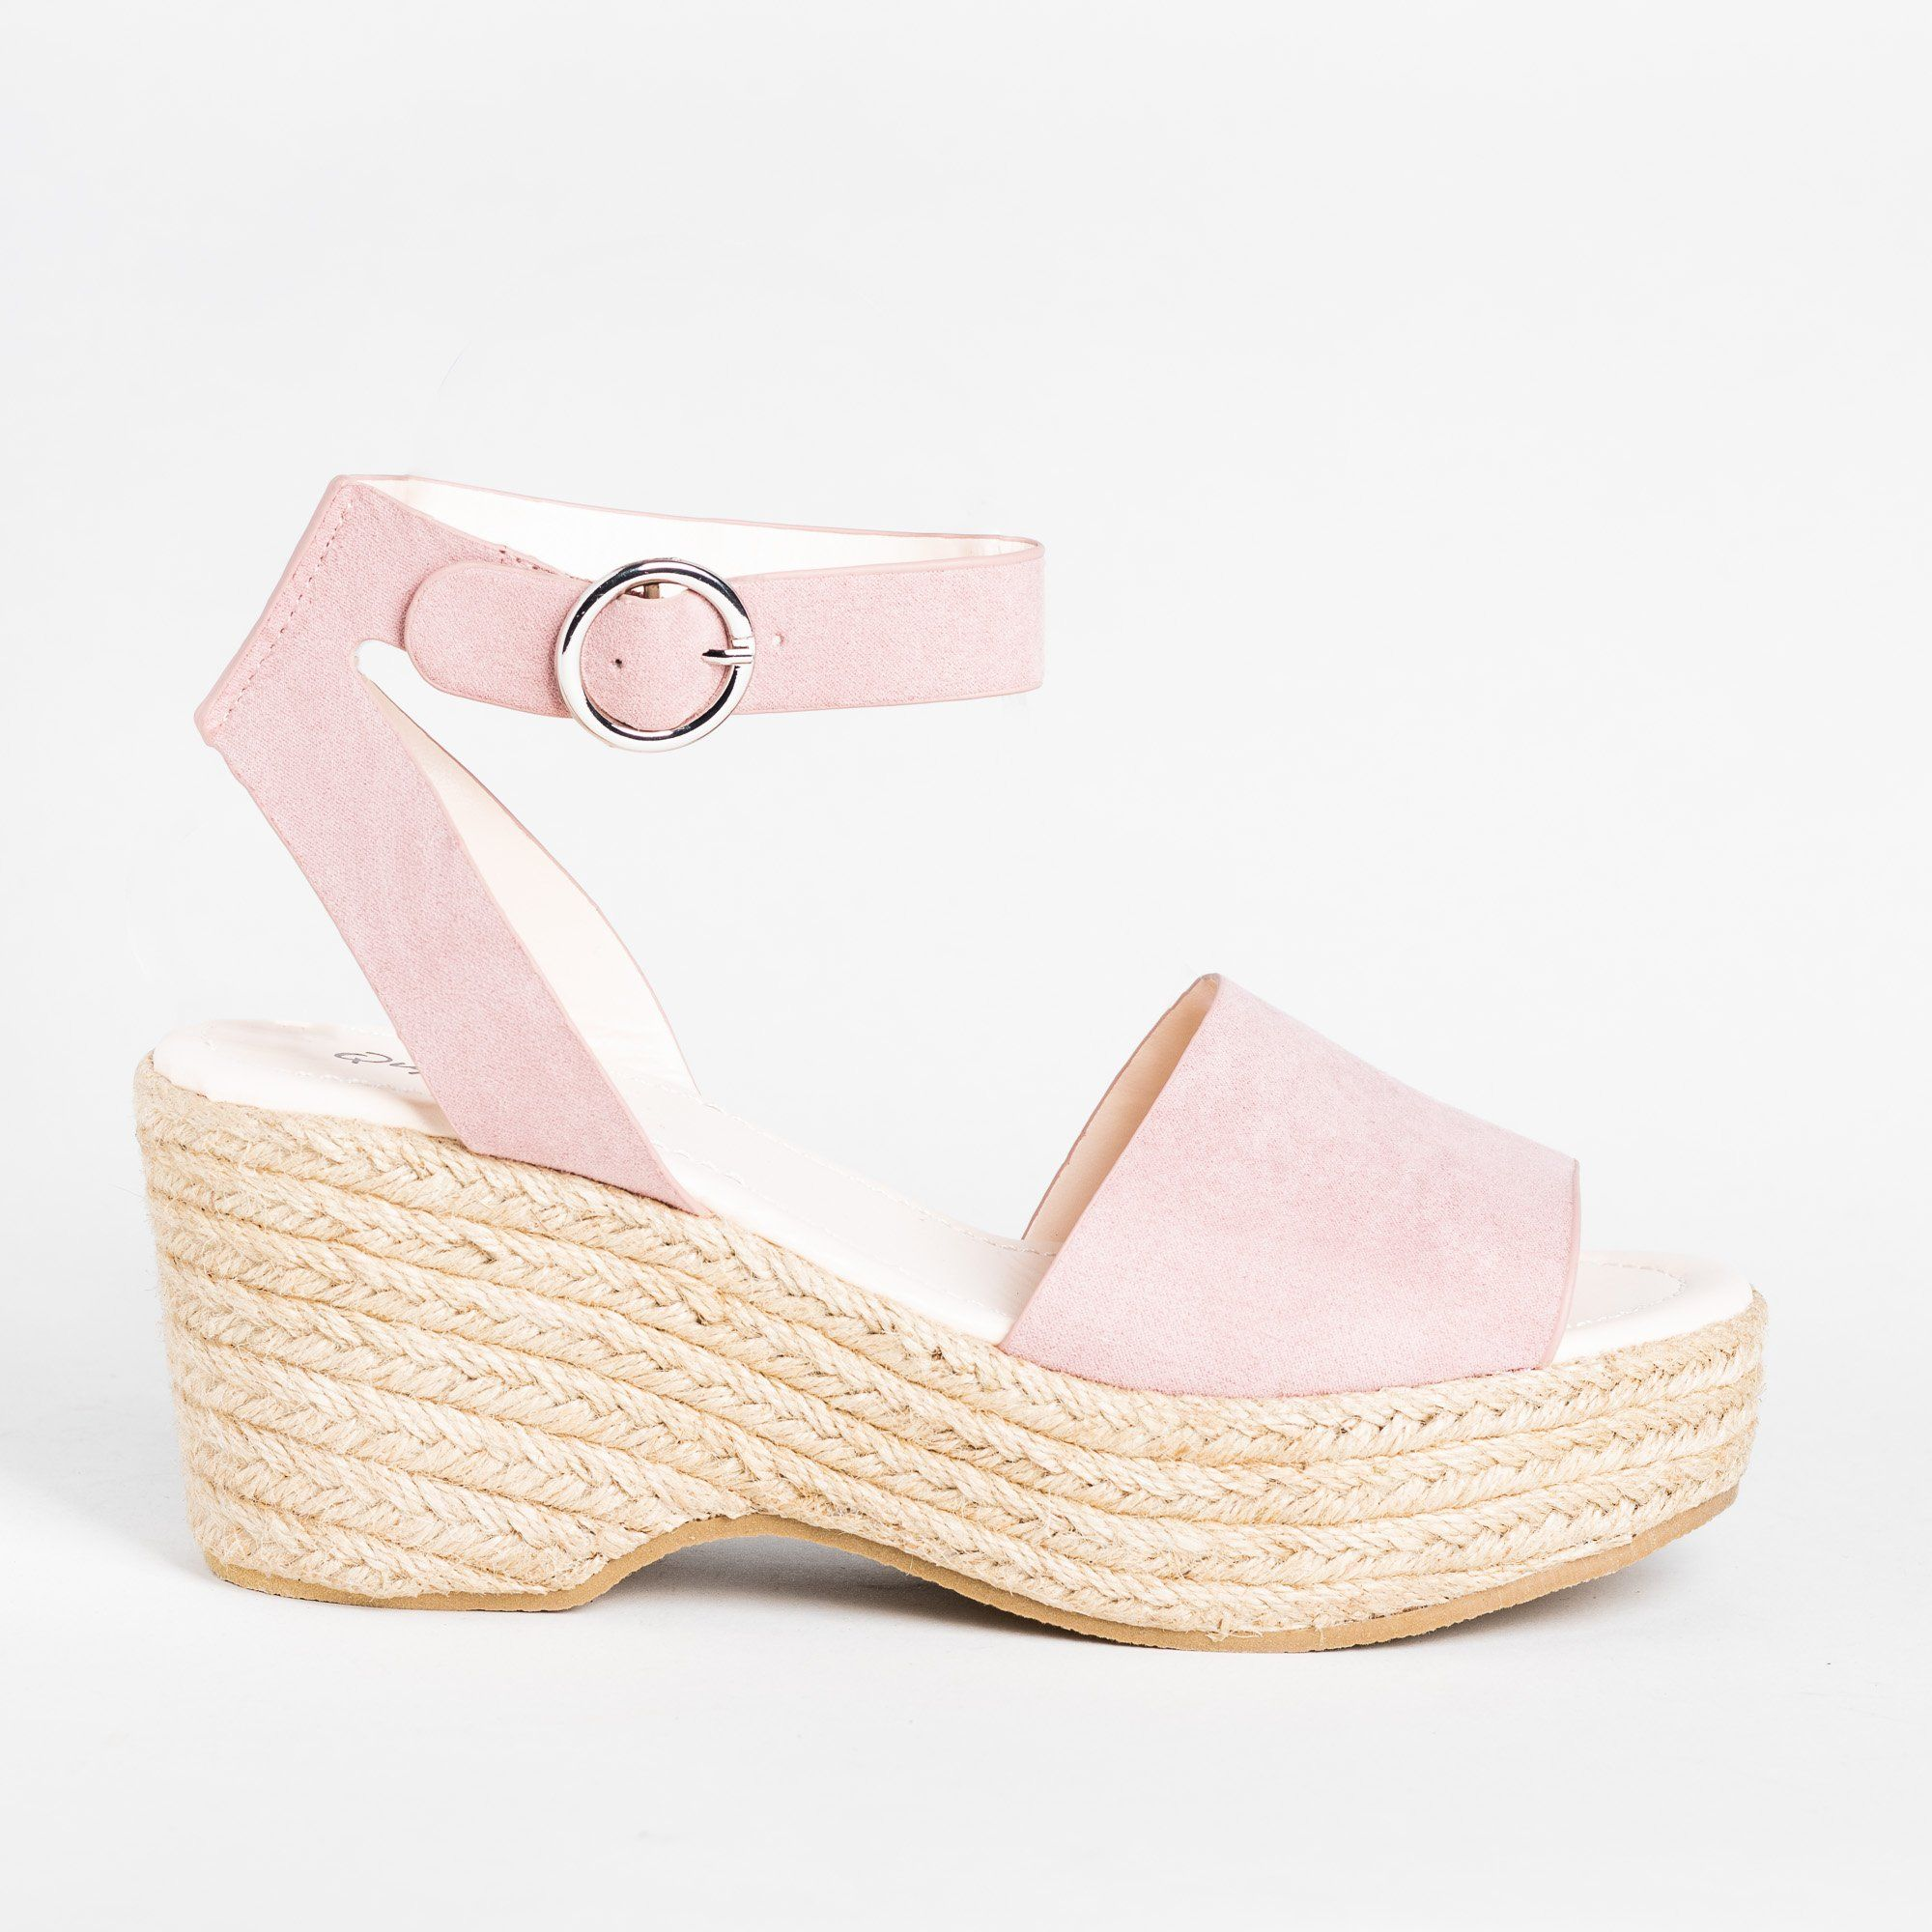 f4525d9d5 Come check out this latest arrival now on Shoetopia.com. Search: Gorgeous  Espadrille